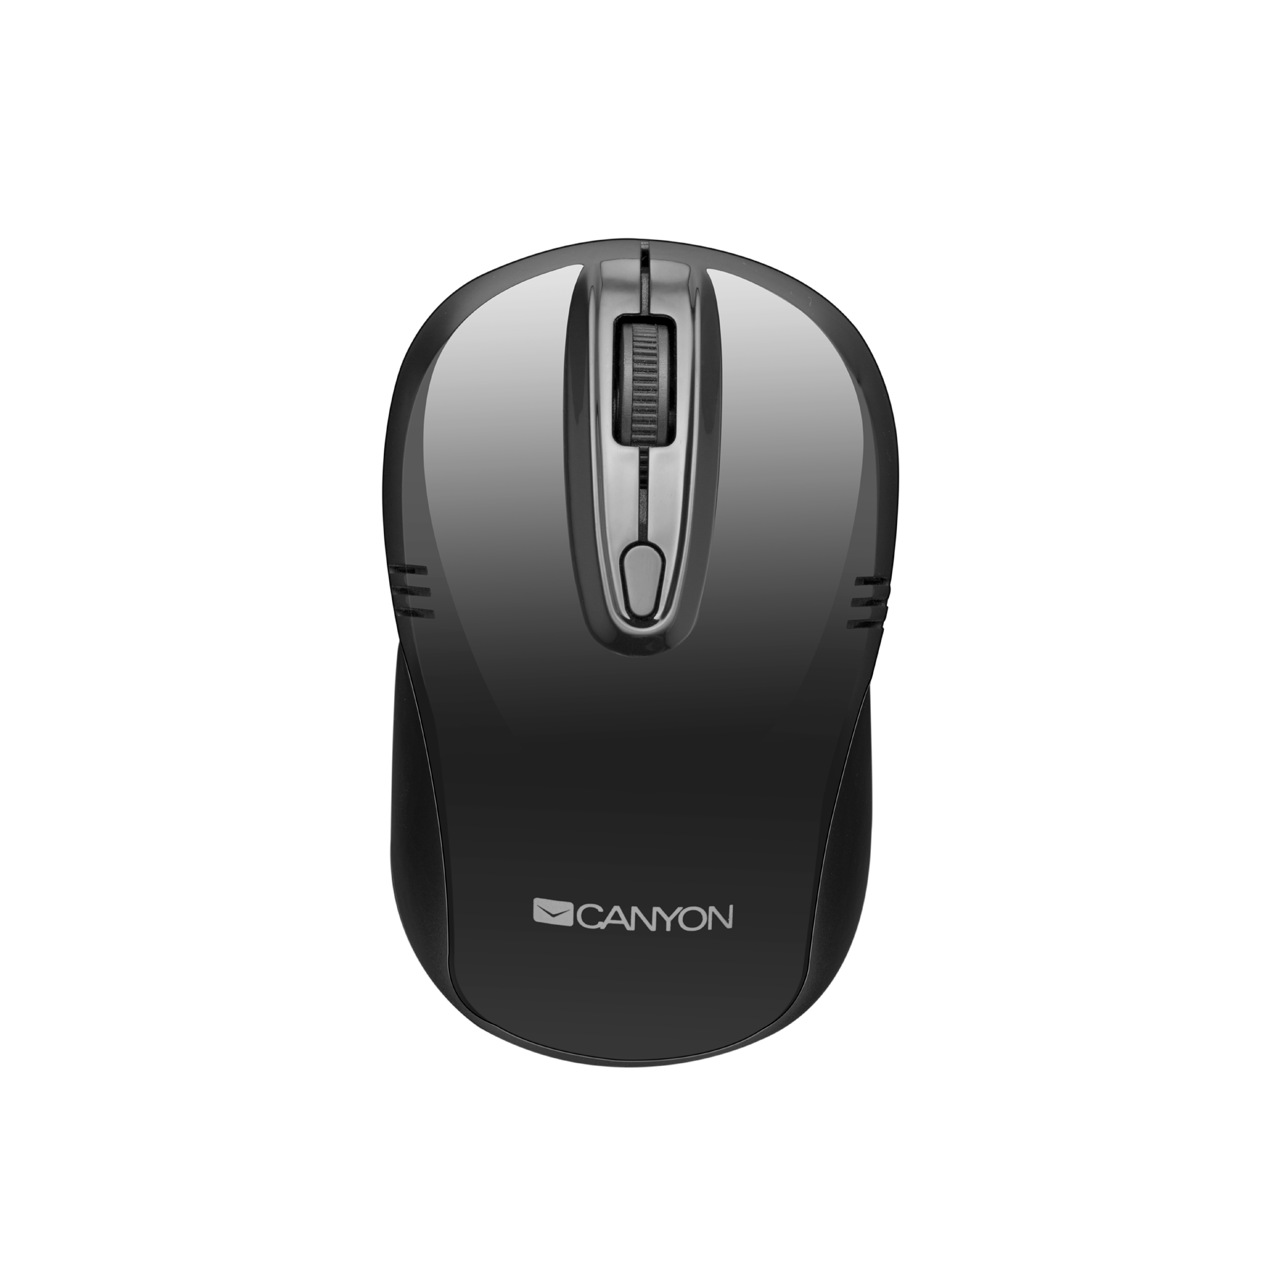 canyon wireless mouse driver download